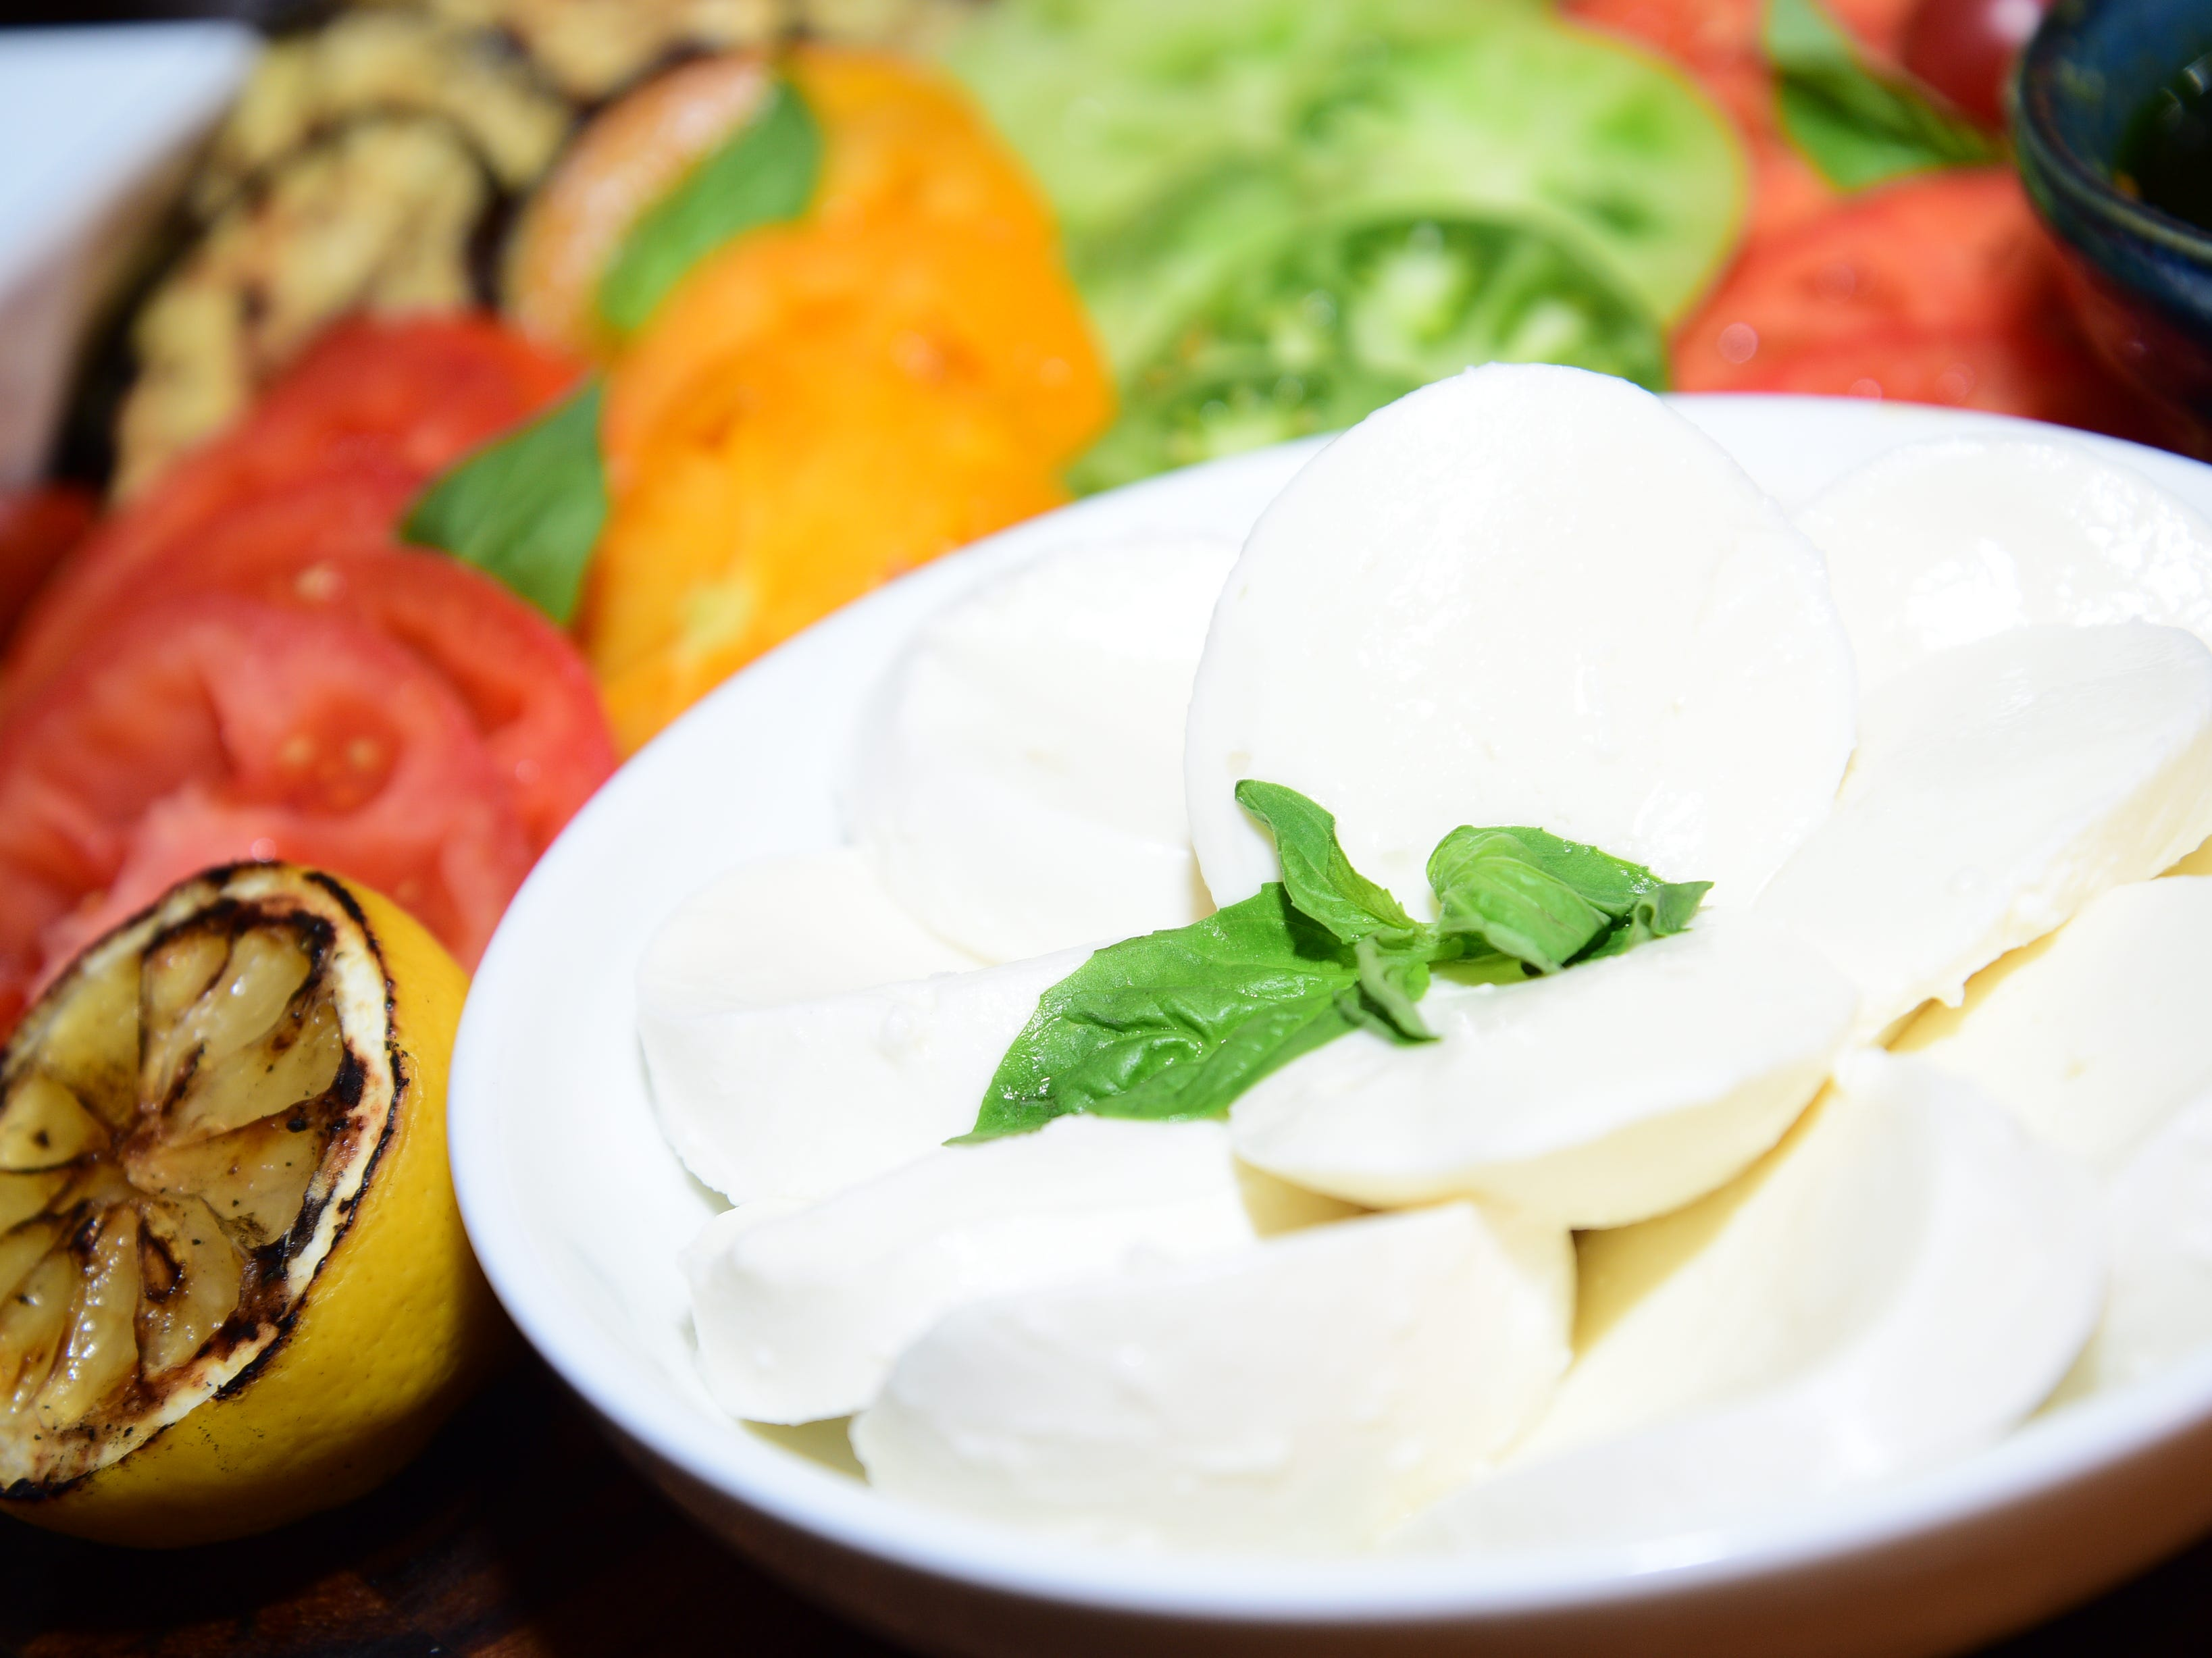 The Mozzarella and Heirloom Tomato Board is one of the new items being offered during the Phoenix Suns 2018-2019 season at Talking Stick Resort Arena.